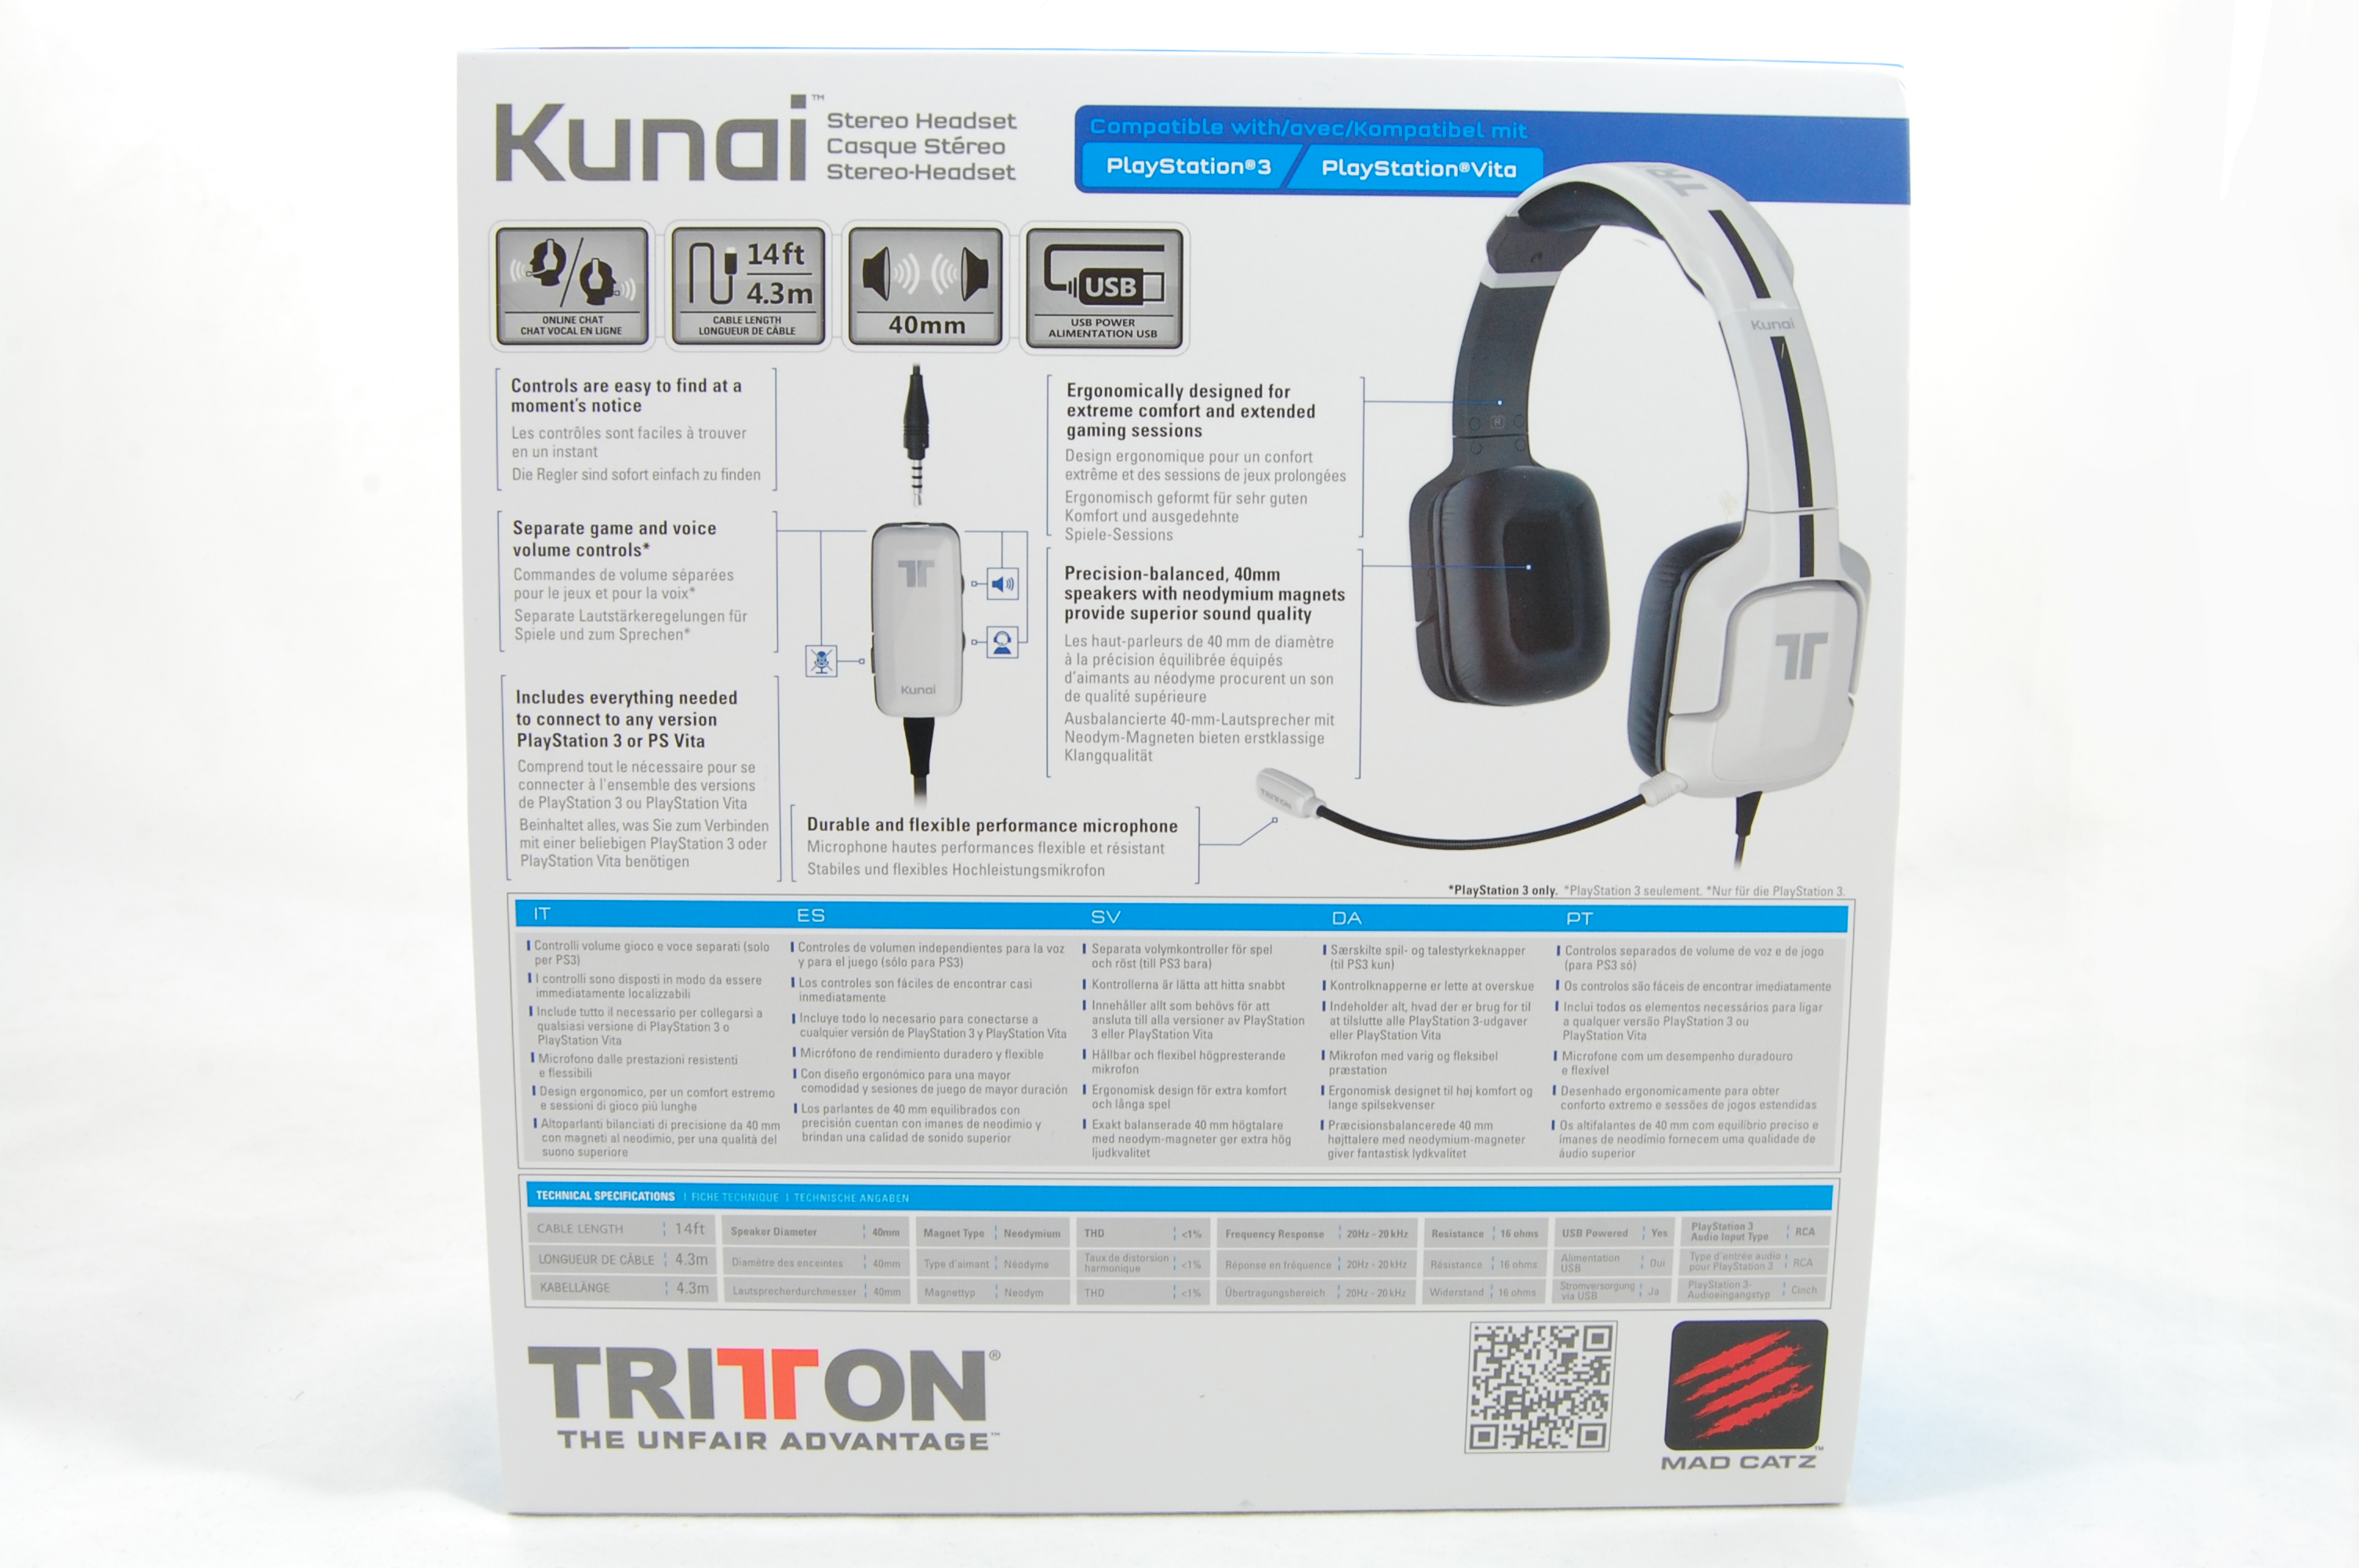 Tritton Kunai Box Back